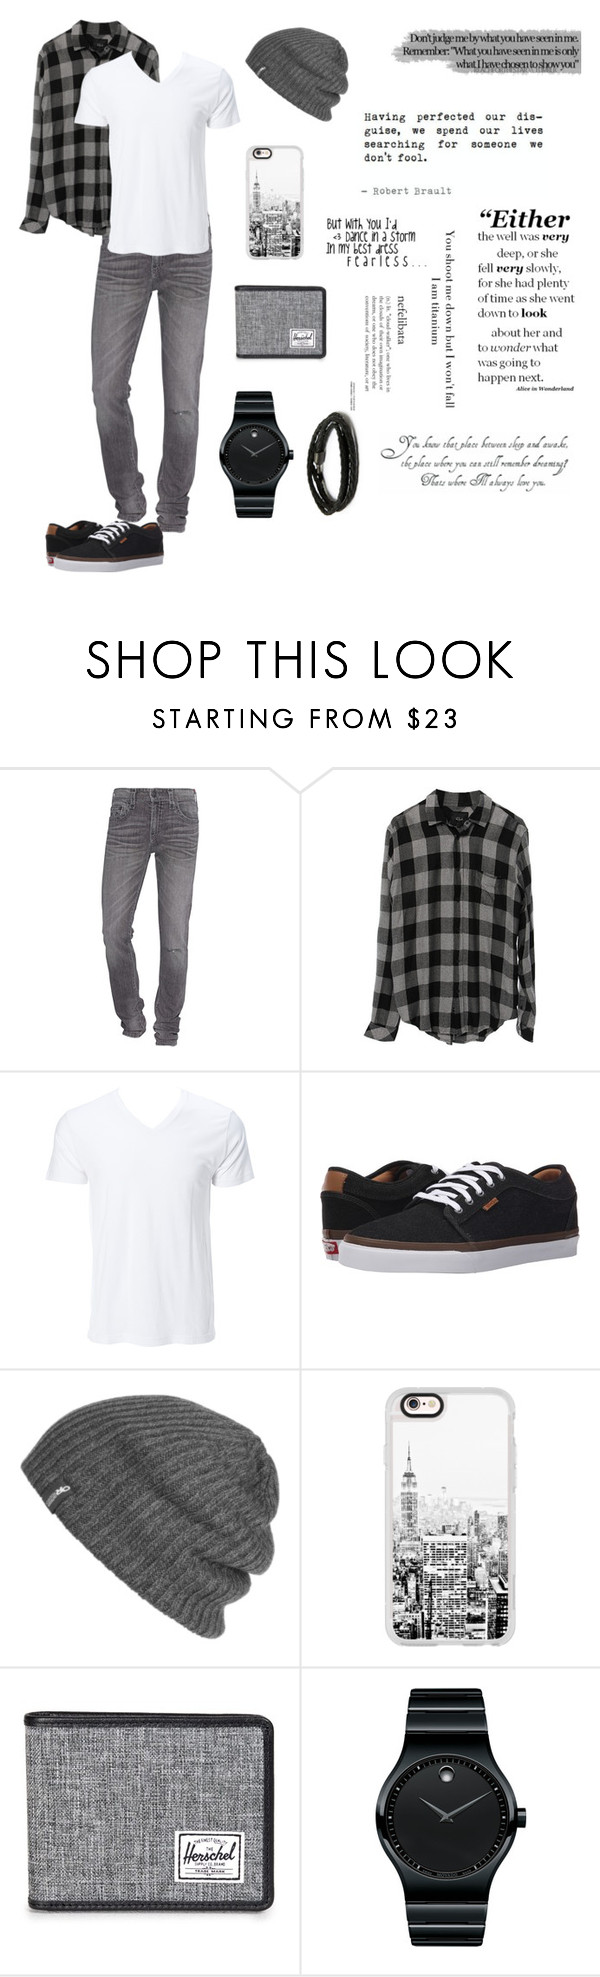 """3rd Menswear... Told ya it would be like this..."" by beachgirl511 ❤ liked on Polyvore featuring True Religion, Vans, Outdoor Research, Casetify, Herschel Supply Co., Movado, MIANSAI, men's fashion and menswear"